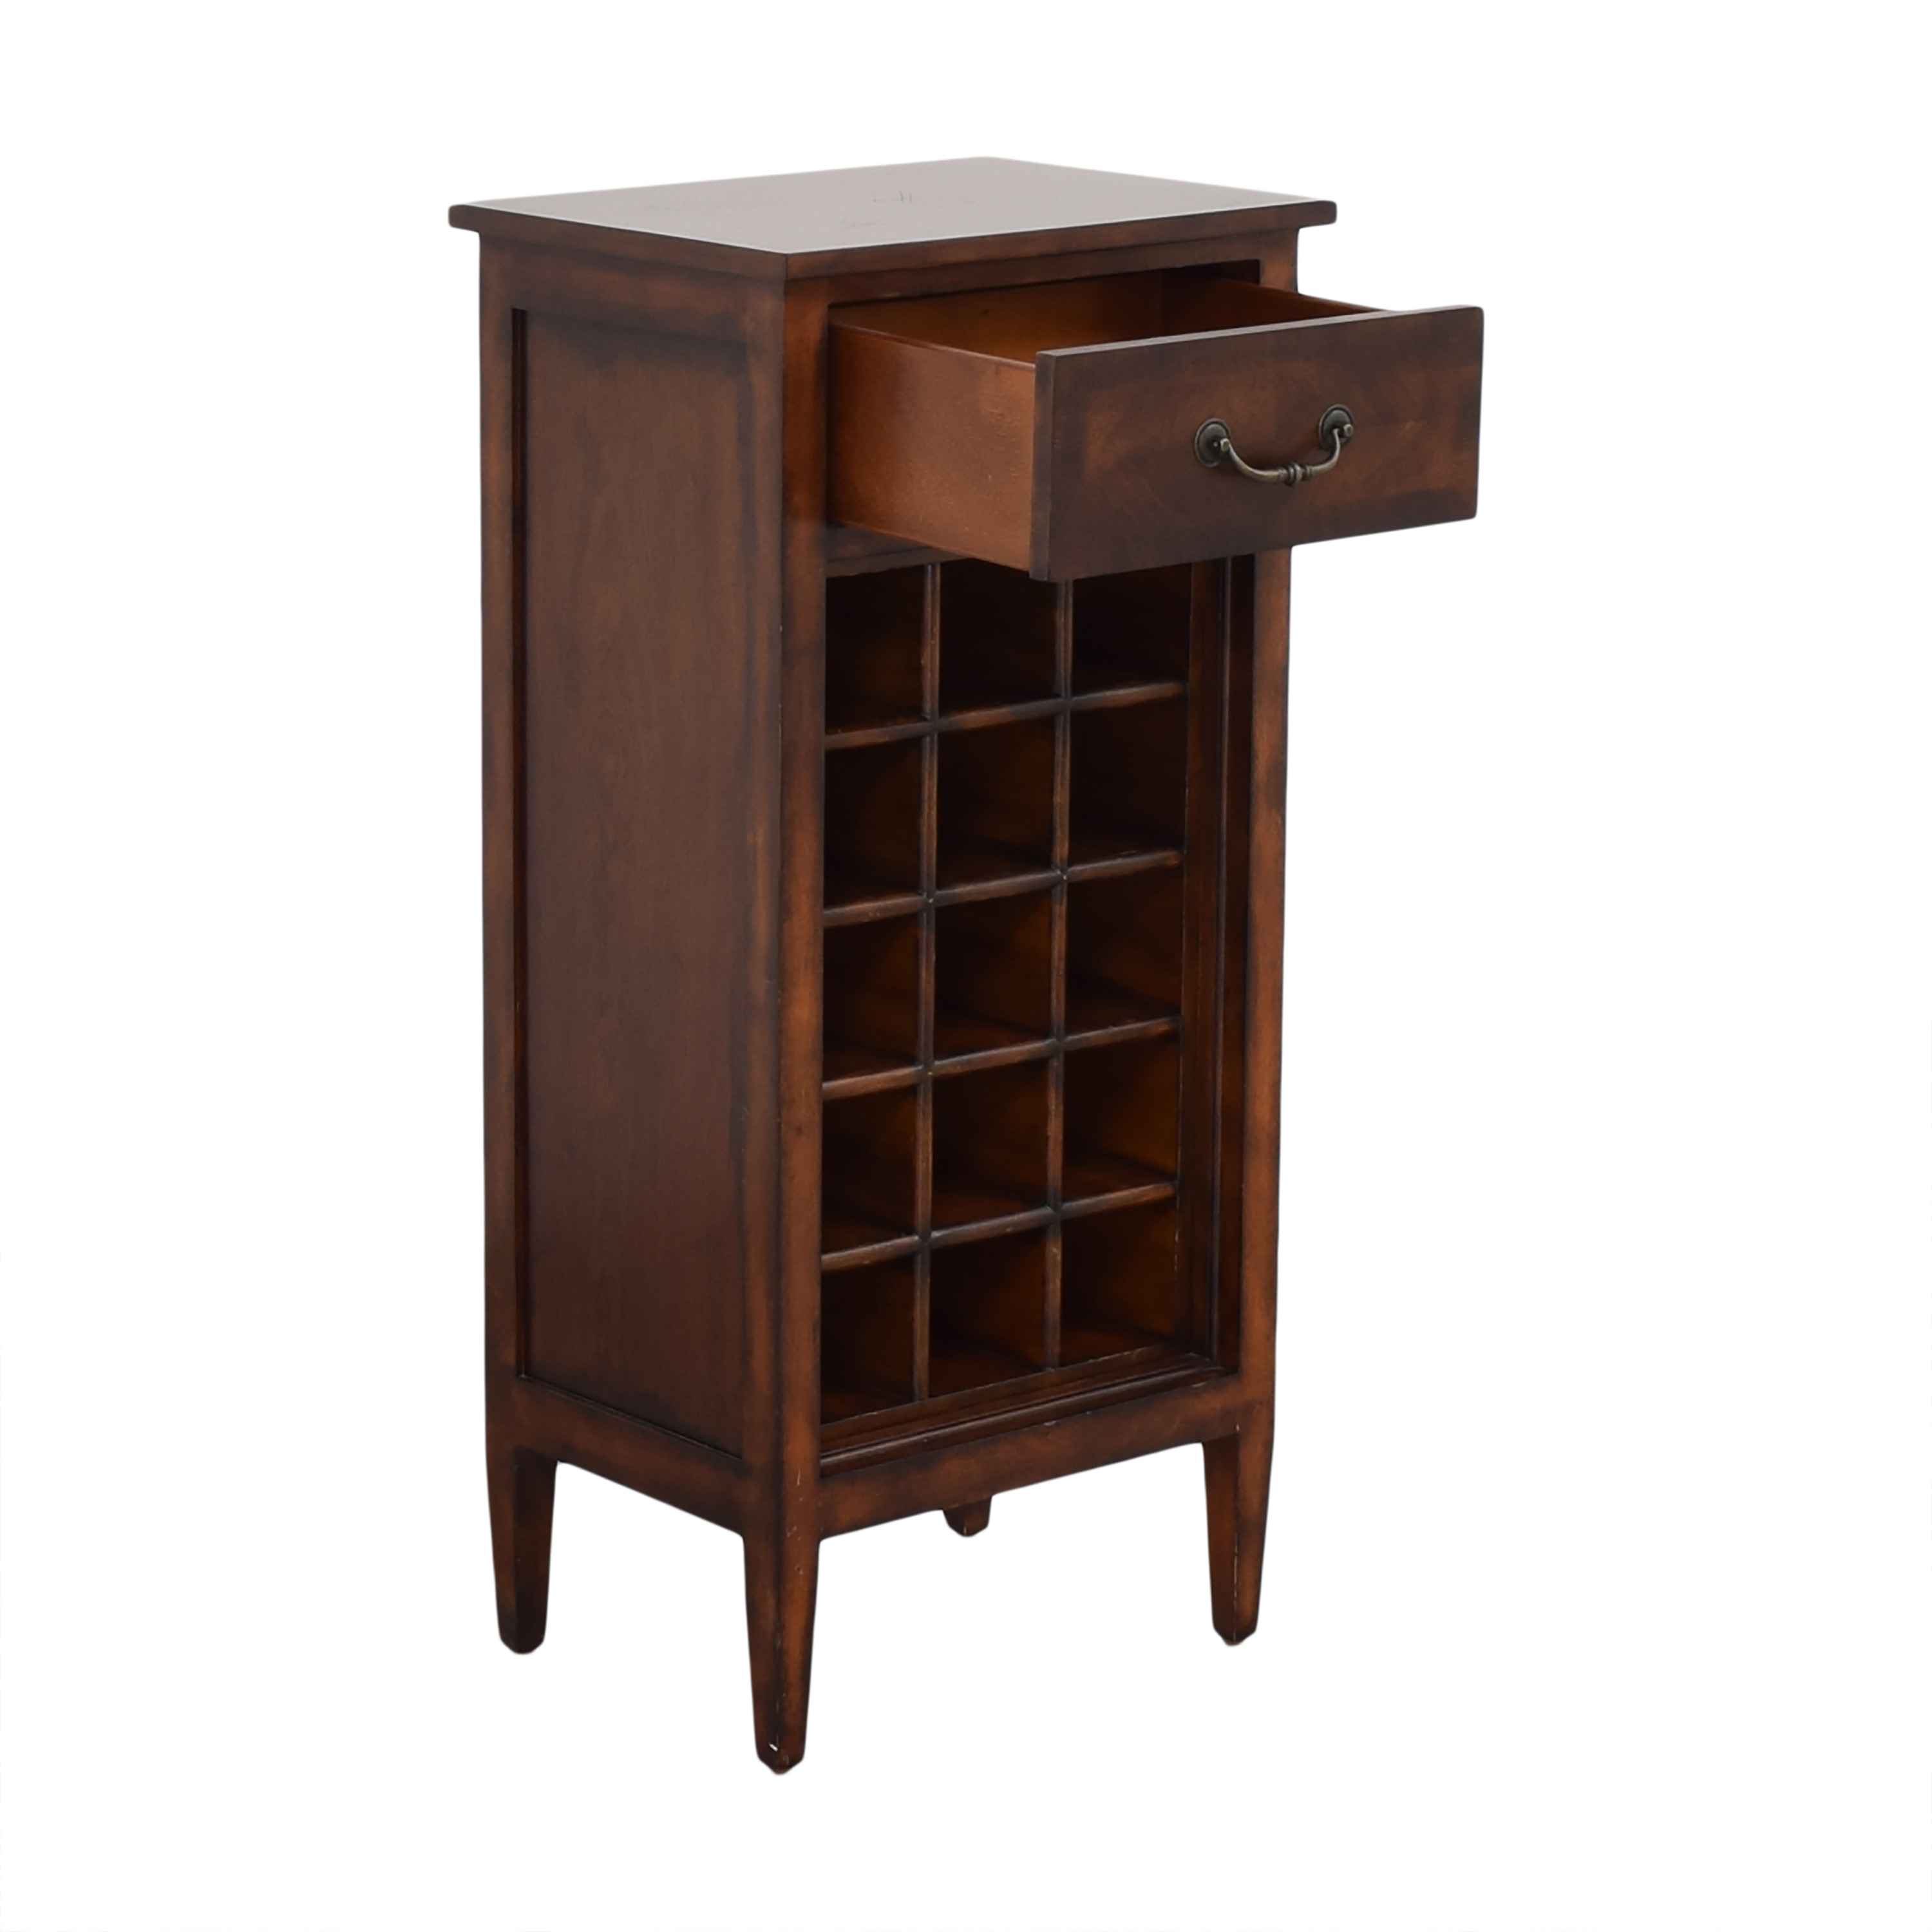 Ethan Allen Wine Cabinet and Side Table Ethan Allen